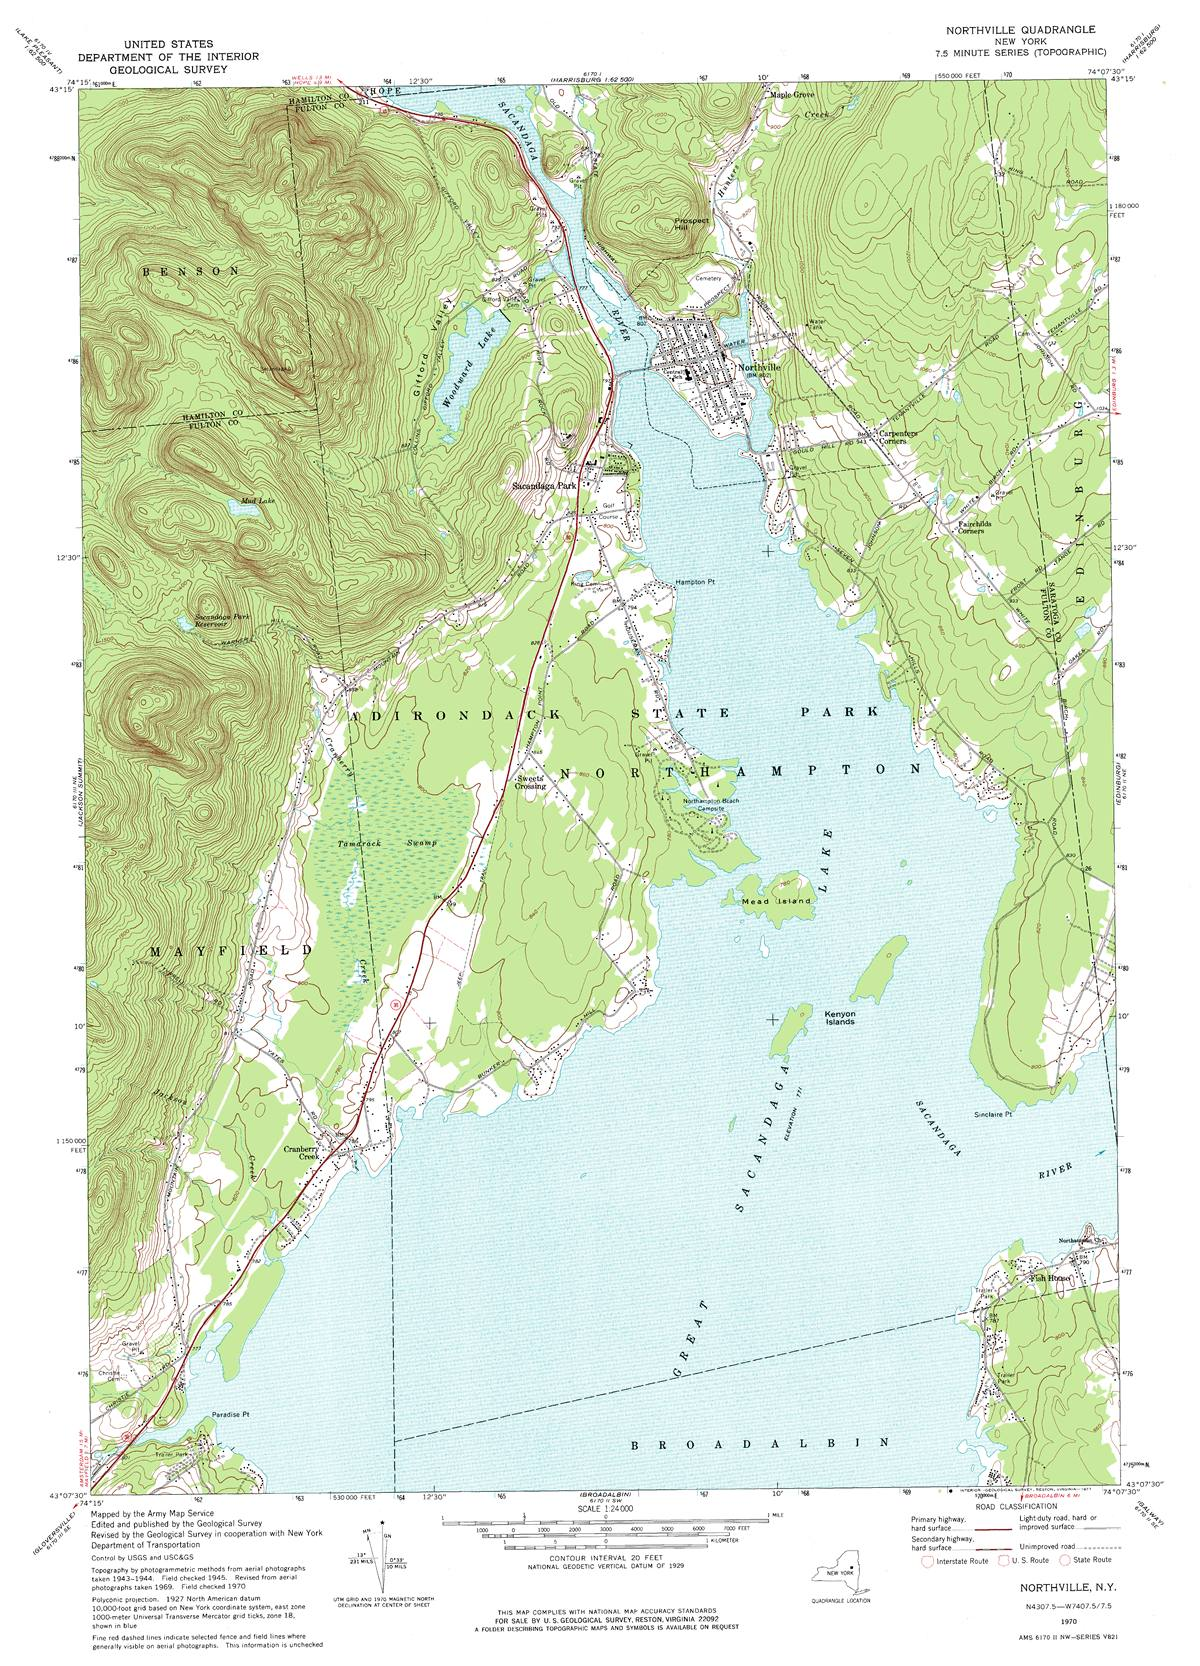 Topographic Map New York State.Ny Route 30 The Adirondack Trail Northville Great Sacandaga Lake